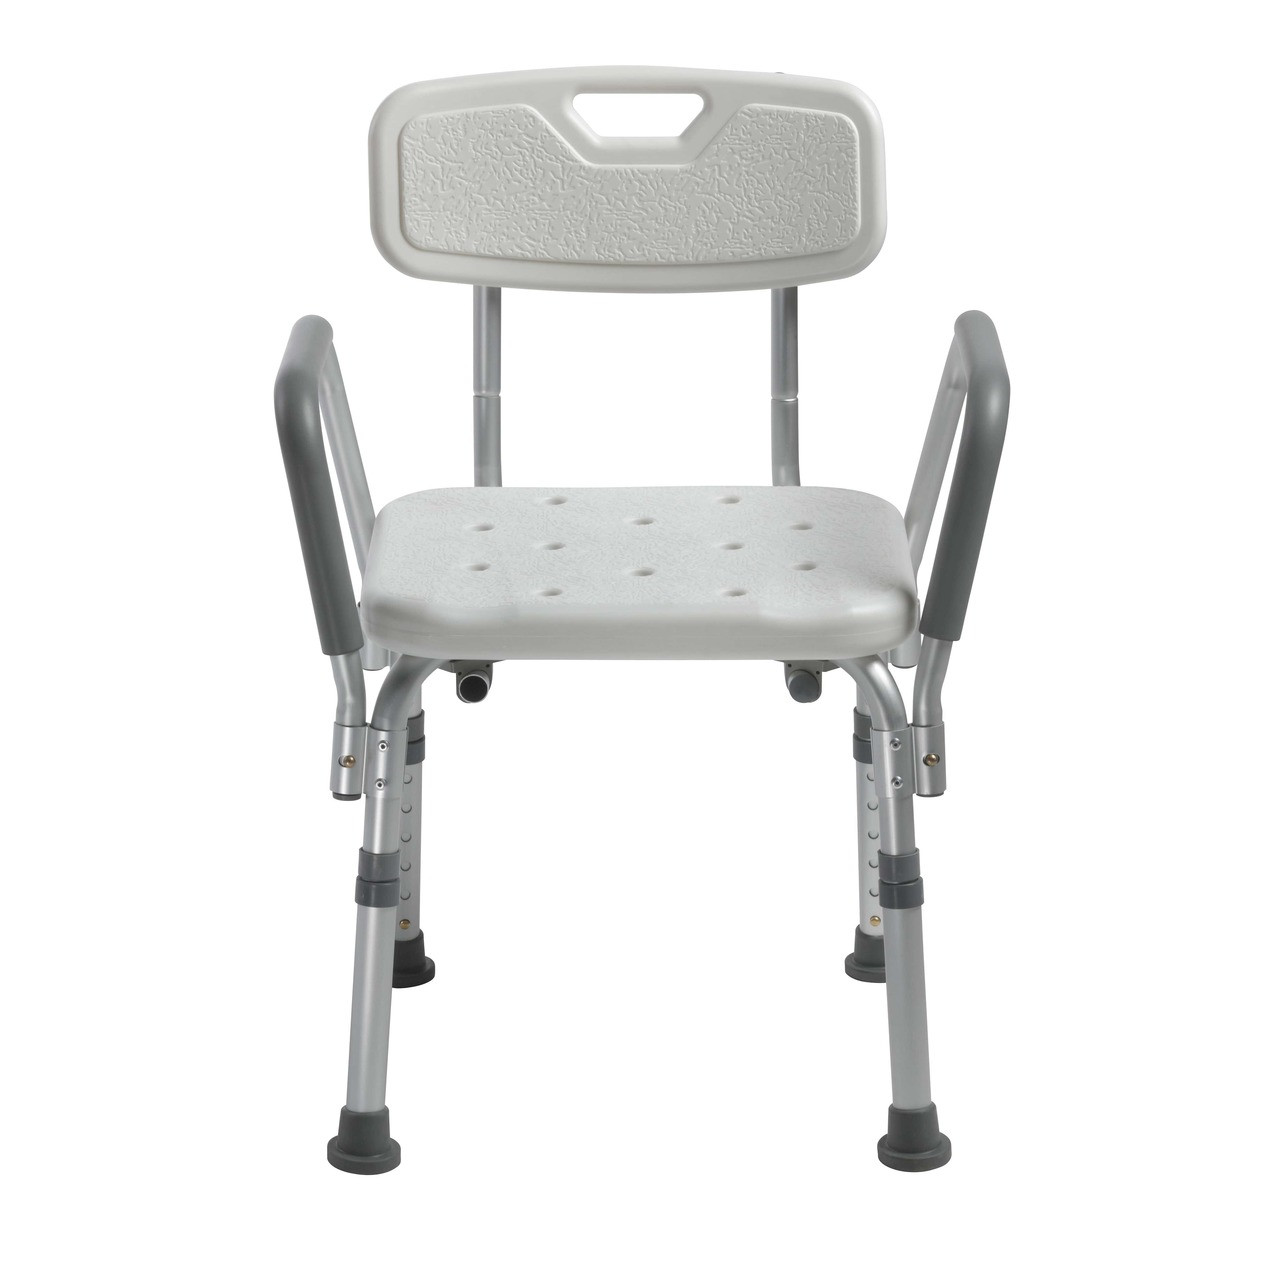 Shower Chair With Back Shower Chair With Back And Removable Padded Arms Model